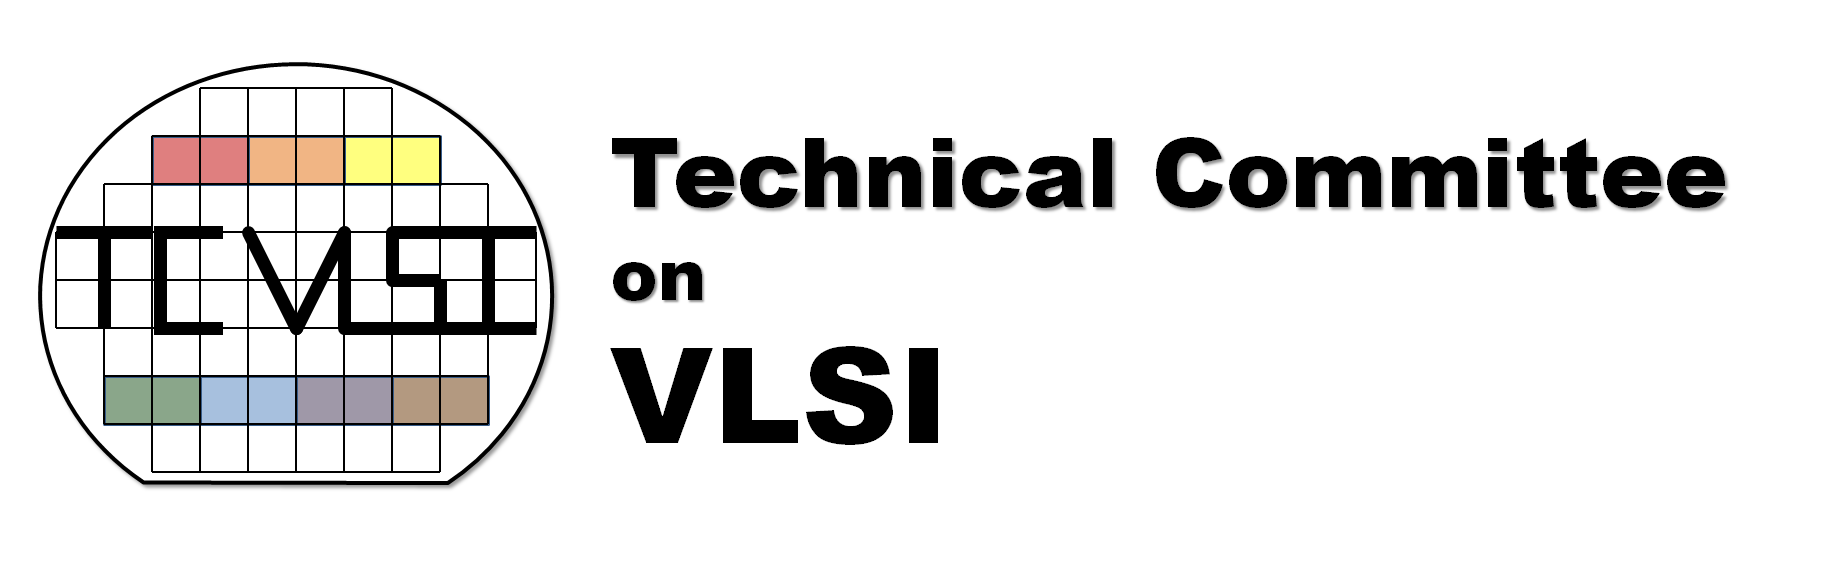 TC-VLSI logo